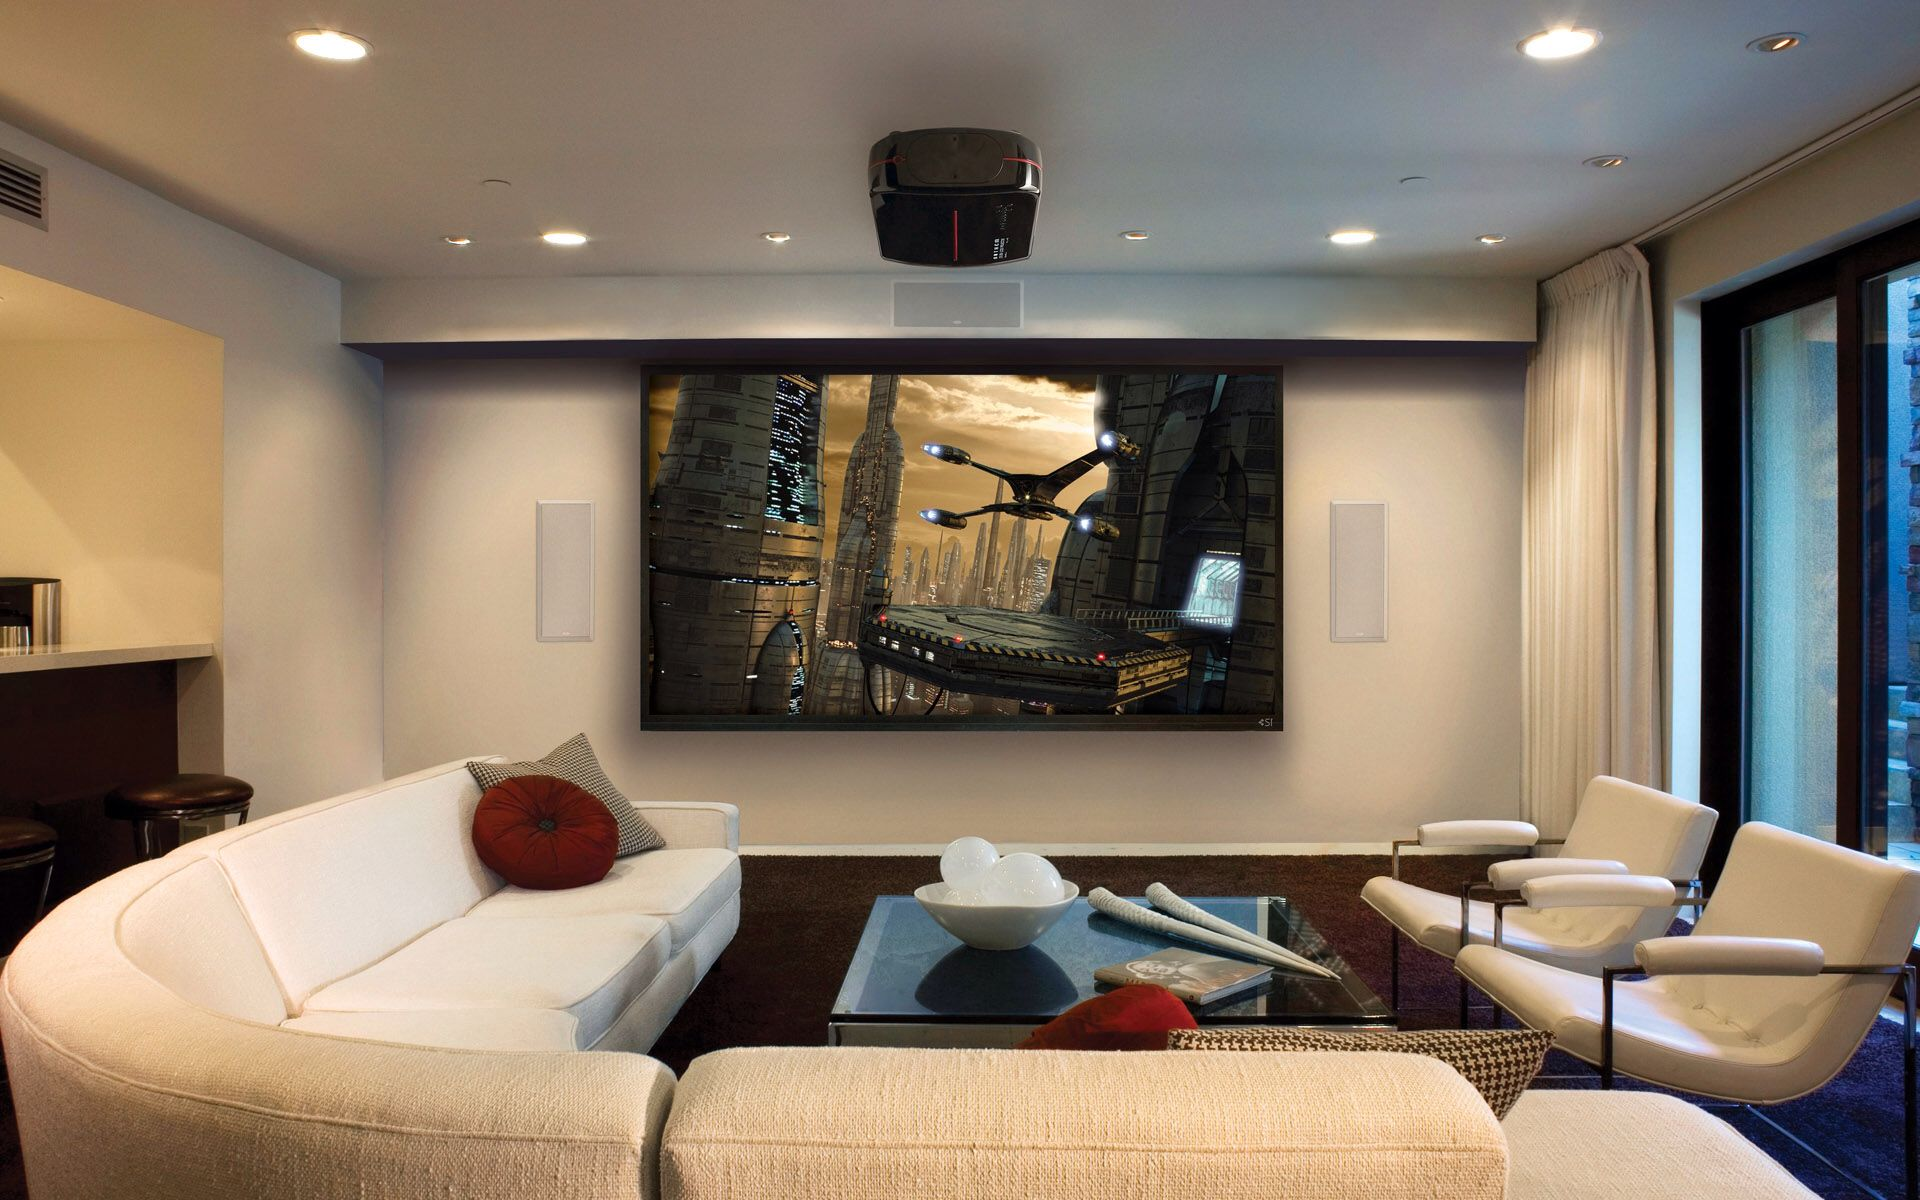 Fascinating Home Interior Designs: Appealing Living Room With Home Theater  And Large Rectangle Television Screen Faced Modern Also Cozy Leather Sofa  With ...